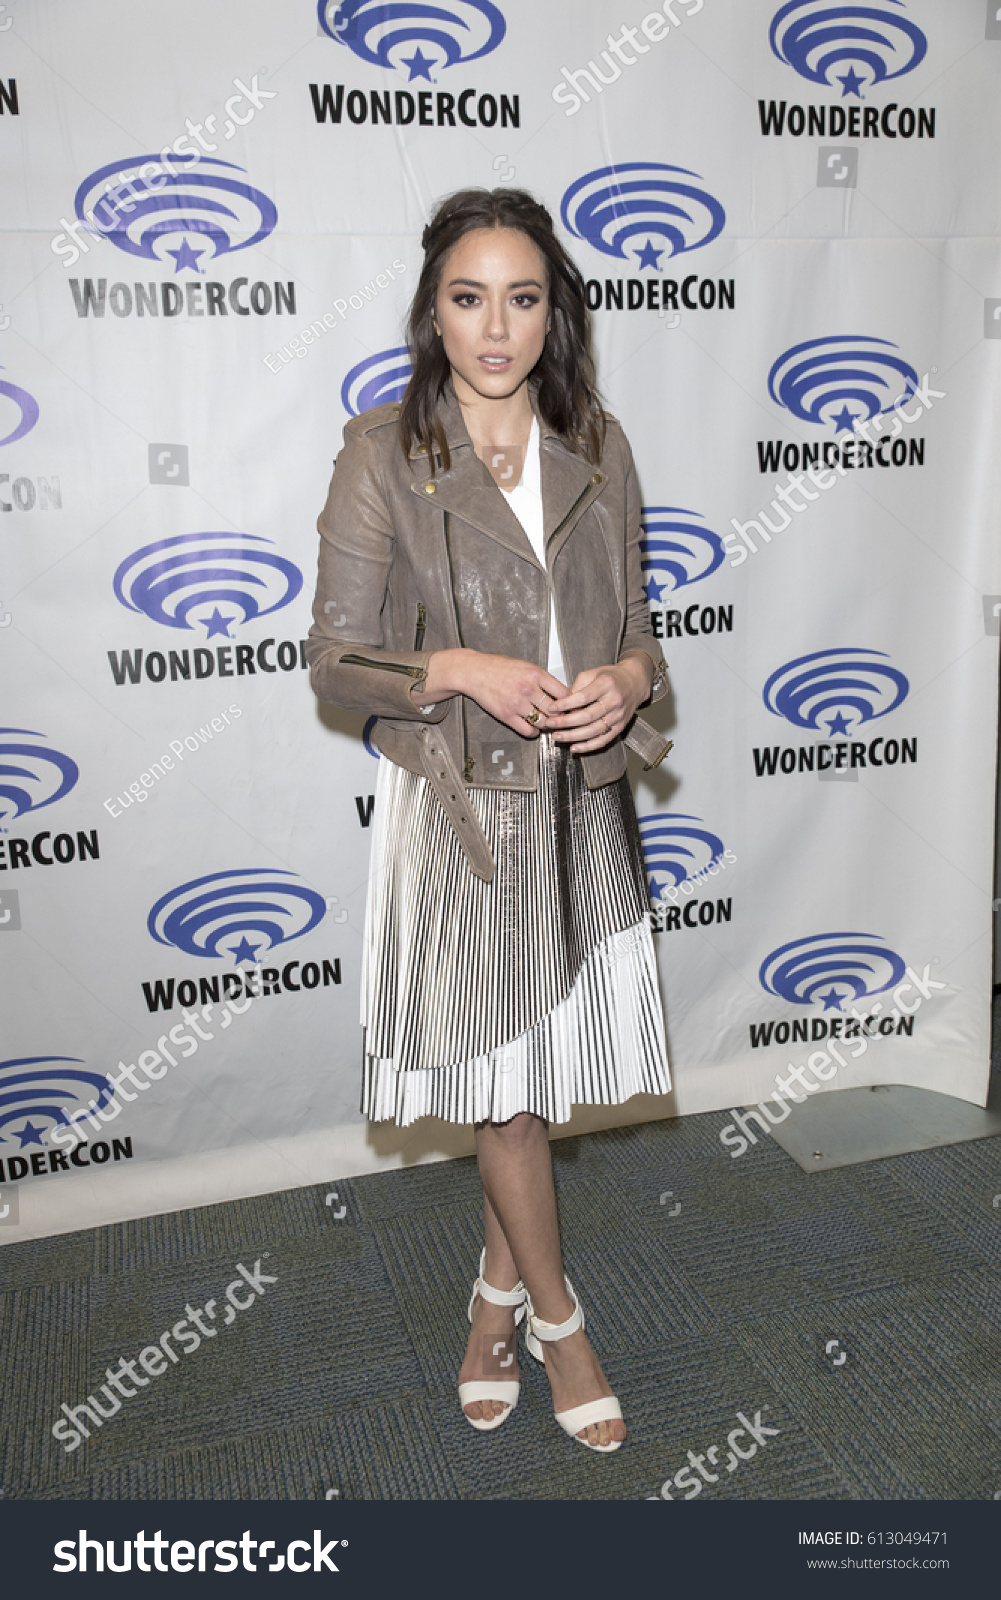 Forum on this topic: Penelope cruz paparazzi, chloe-bennet-agents-of-shield-press-room/